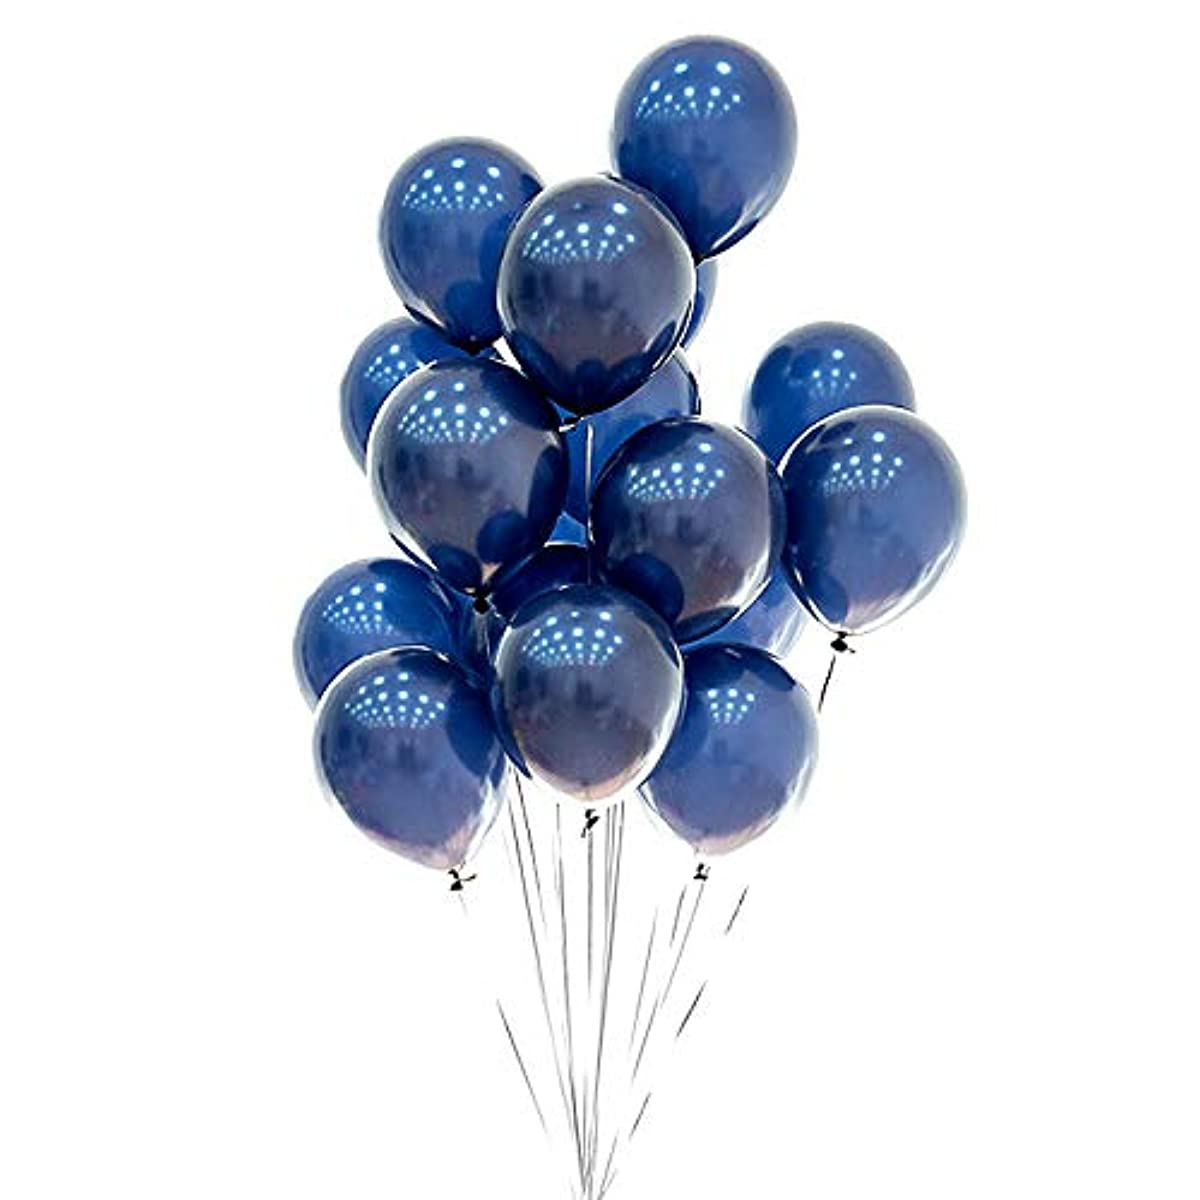 Ink Blue Balloons 10 inch Latex Balloon with Pink White for Wedding Party Festival Decoration 50pcs (Blue)